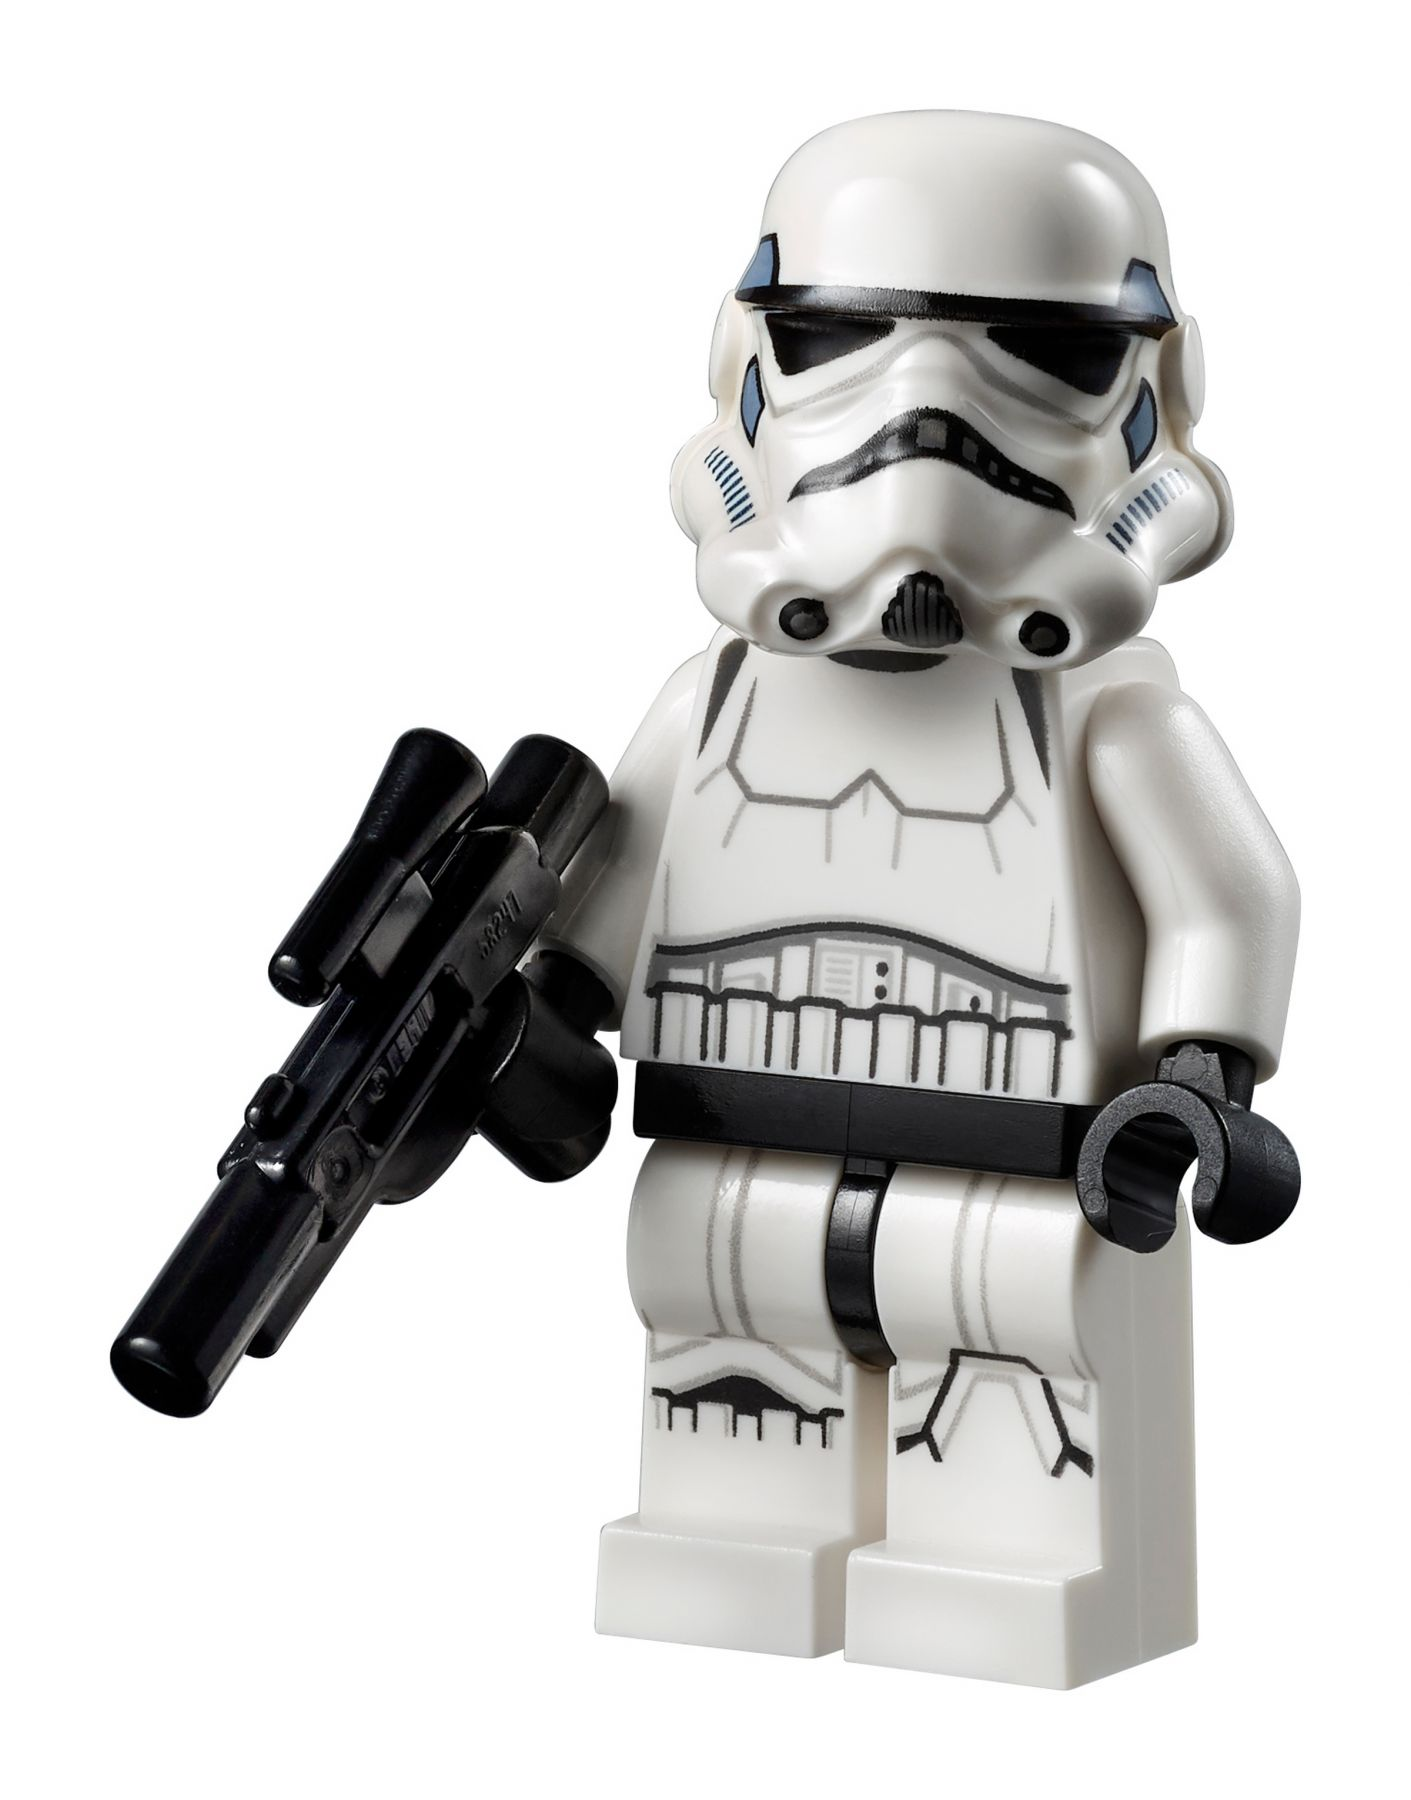 LEGO Star Wars 75222 Verrat in Cloud City™ LEGO_75222_alt28.jpg